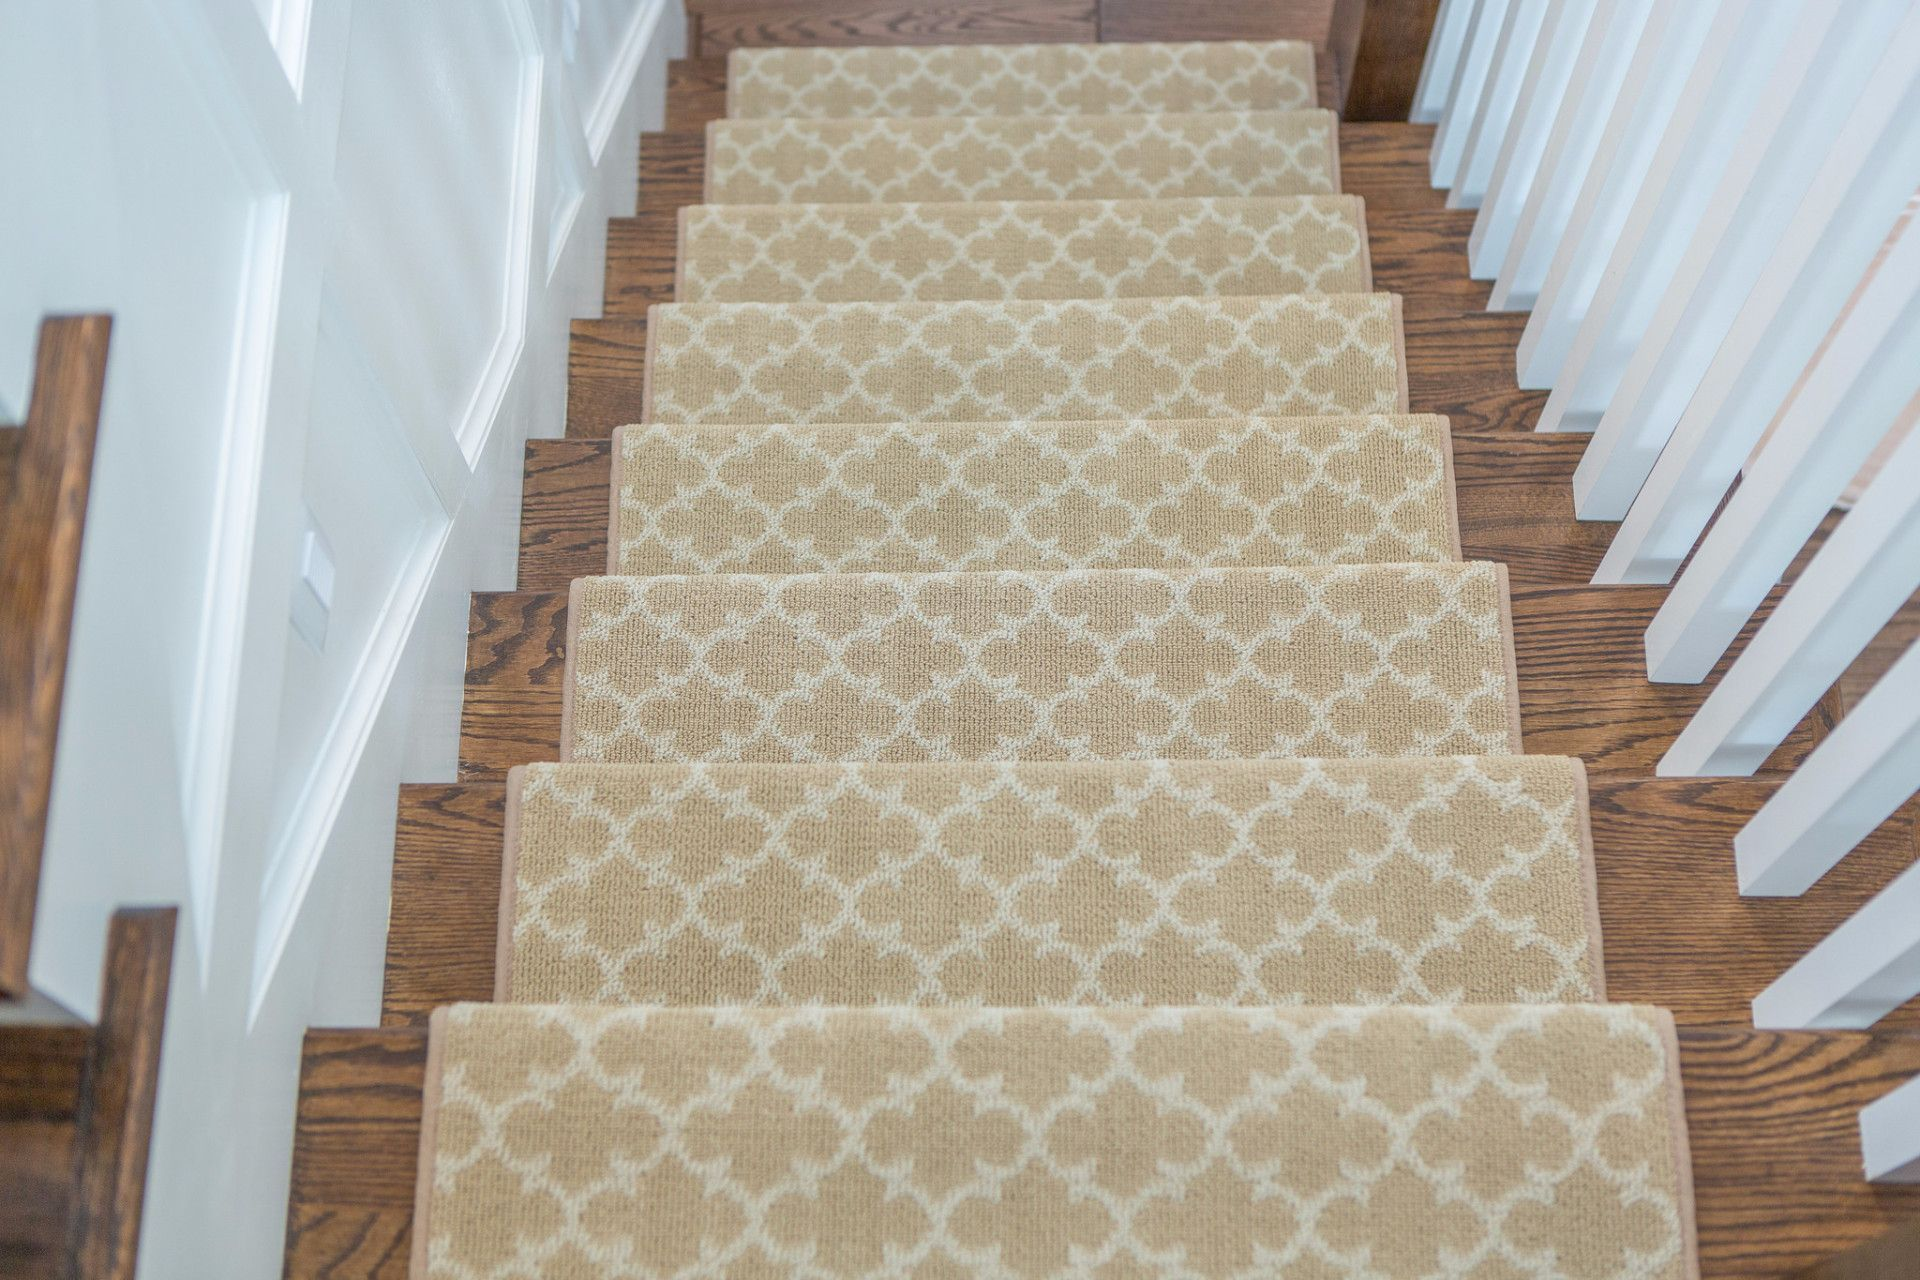 Best Dover Adhesive Bullnose Carpet Stair Tread Home Decor 400 x 300